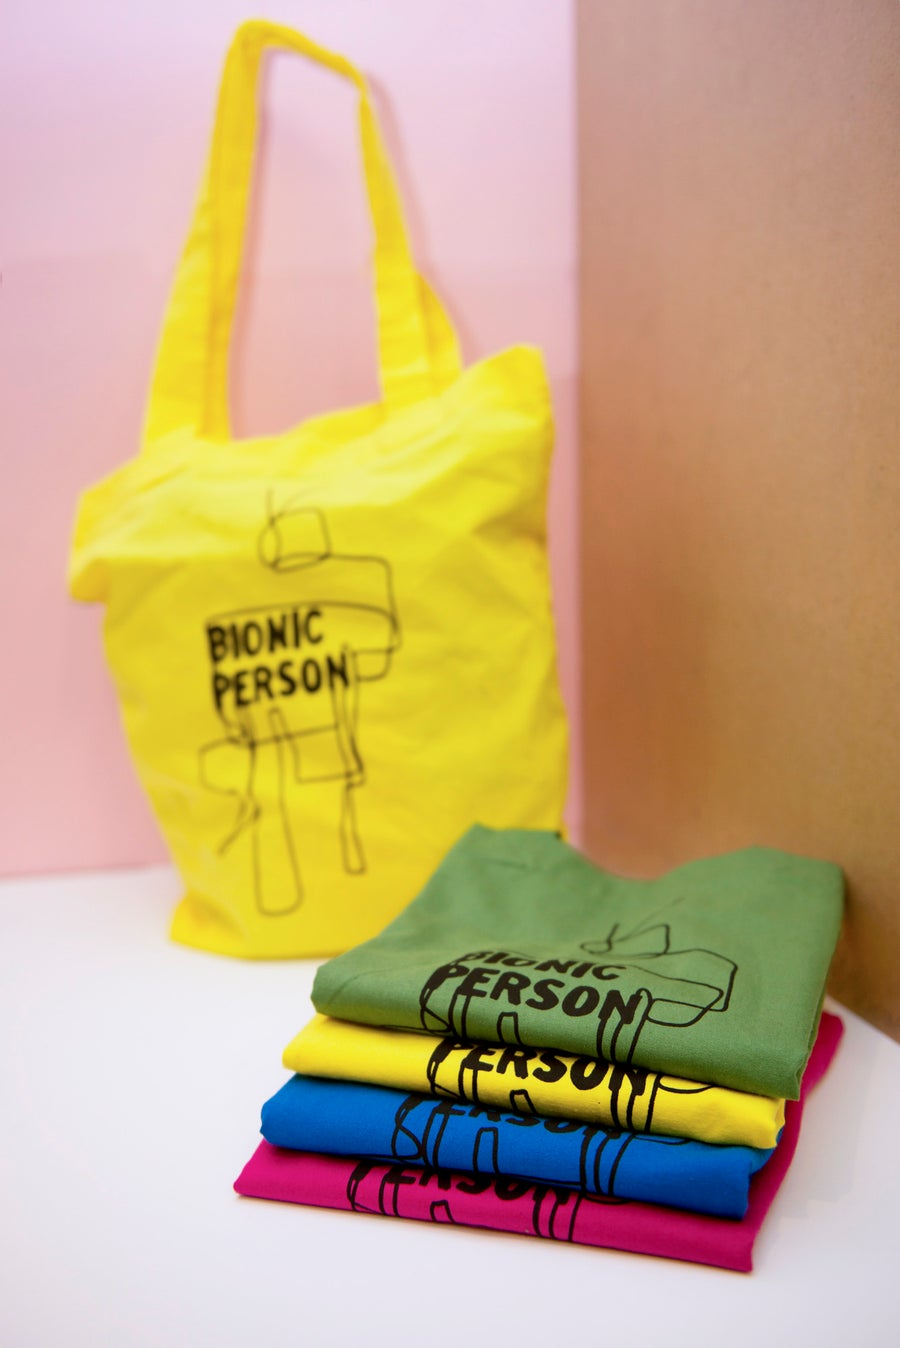 Image of Bionic Person / tote bag